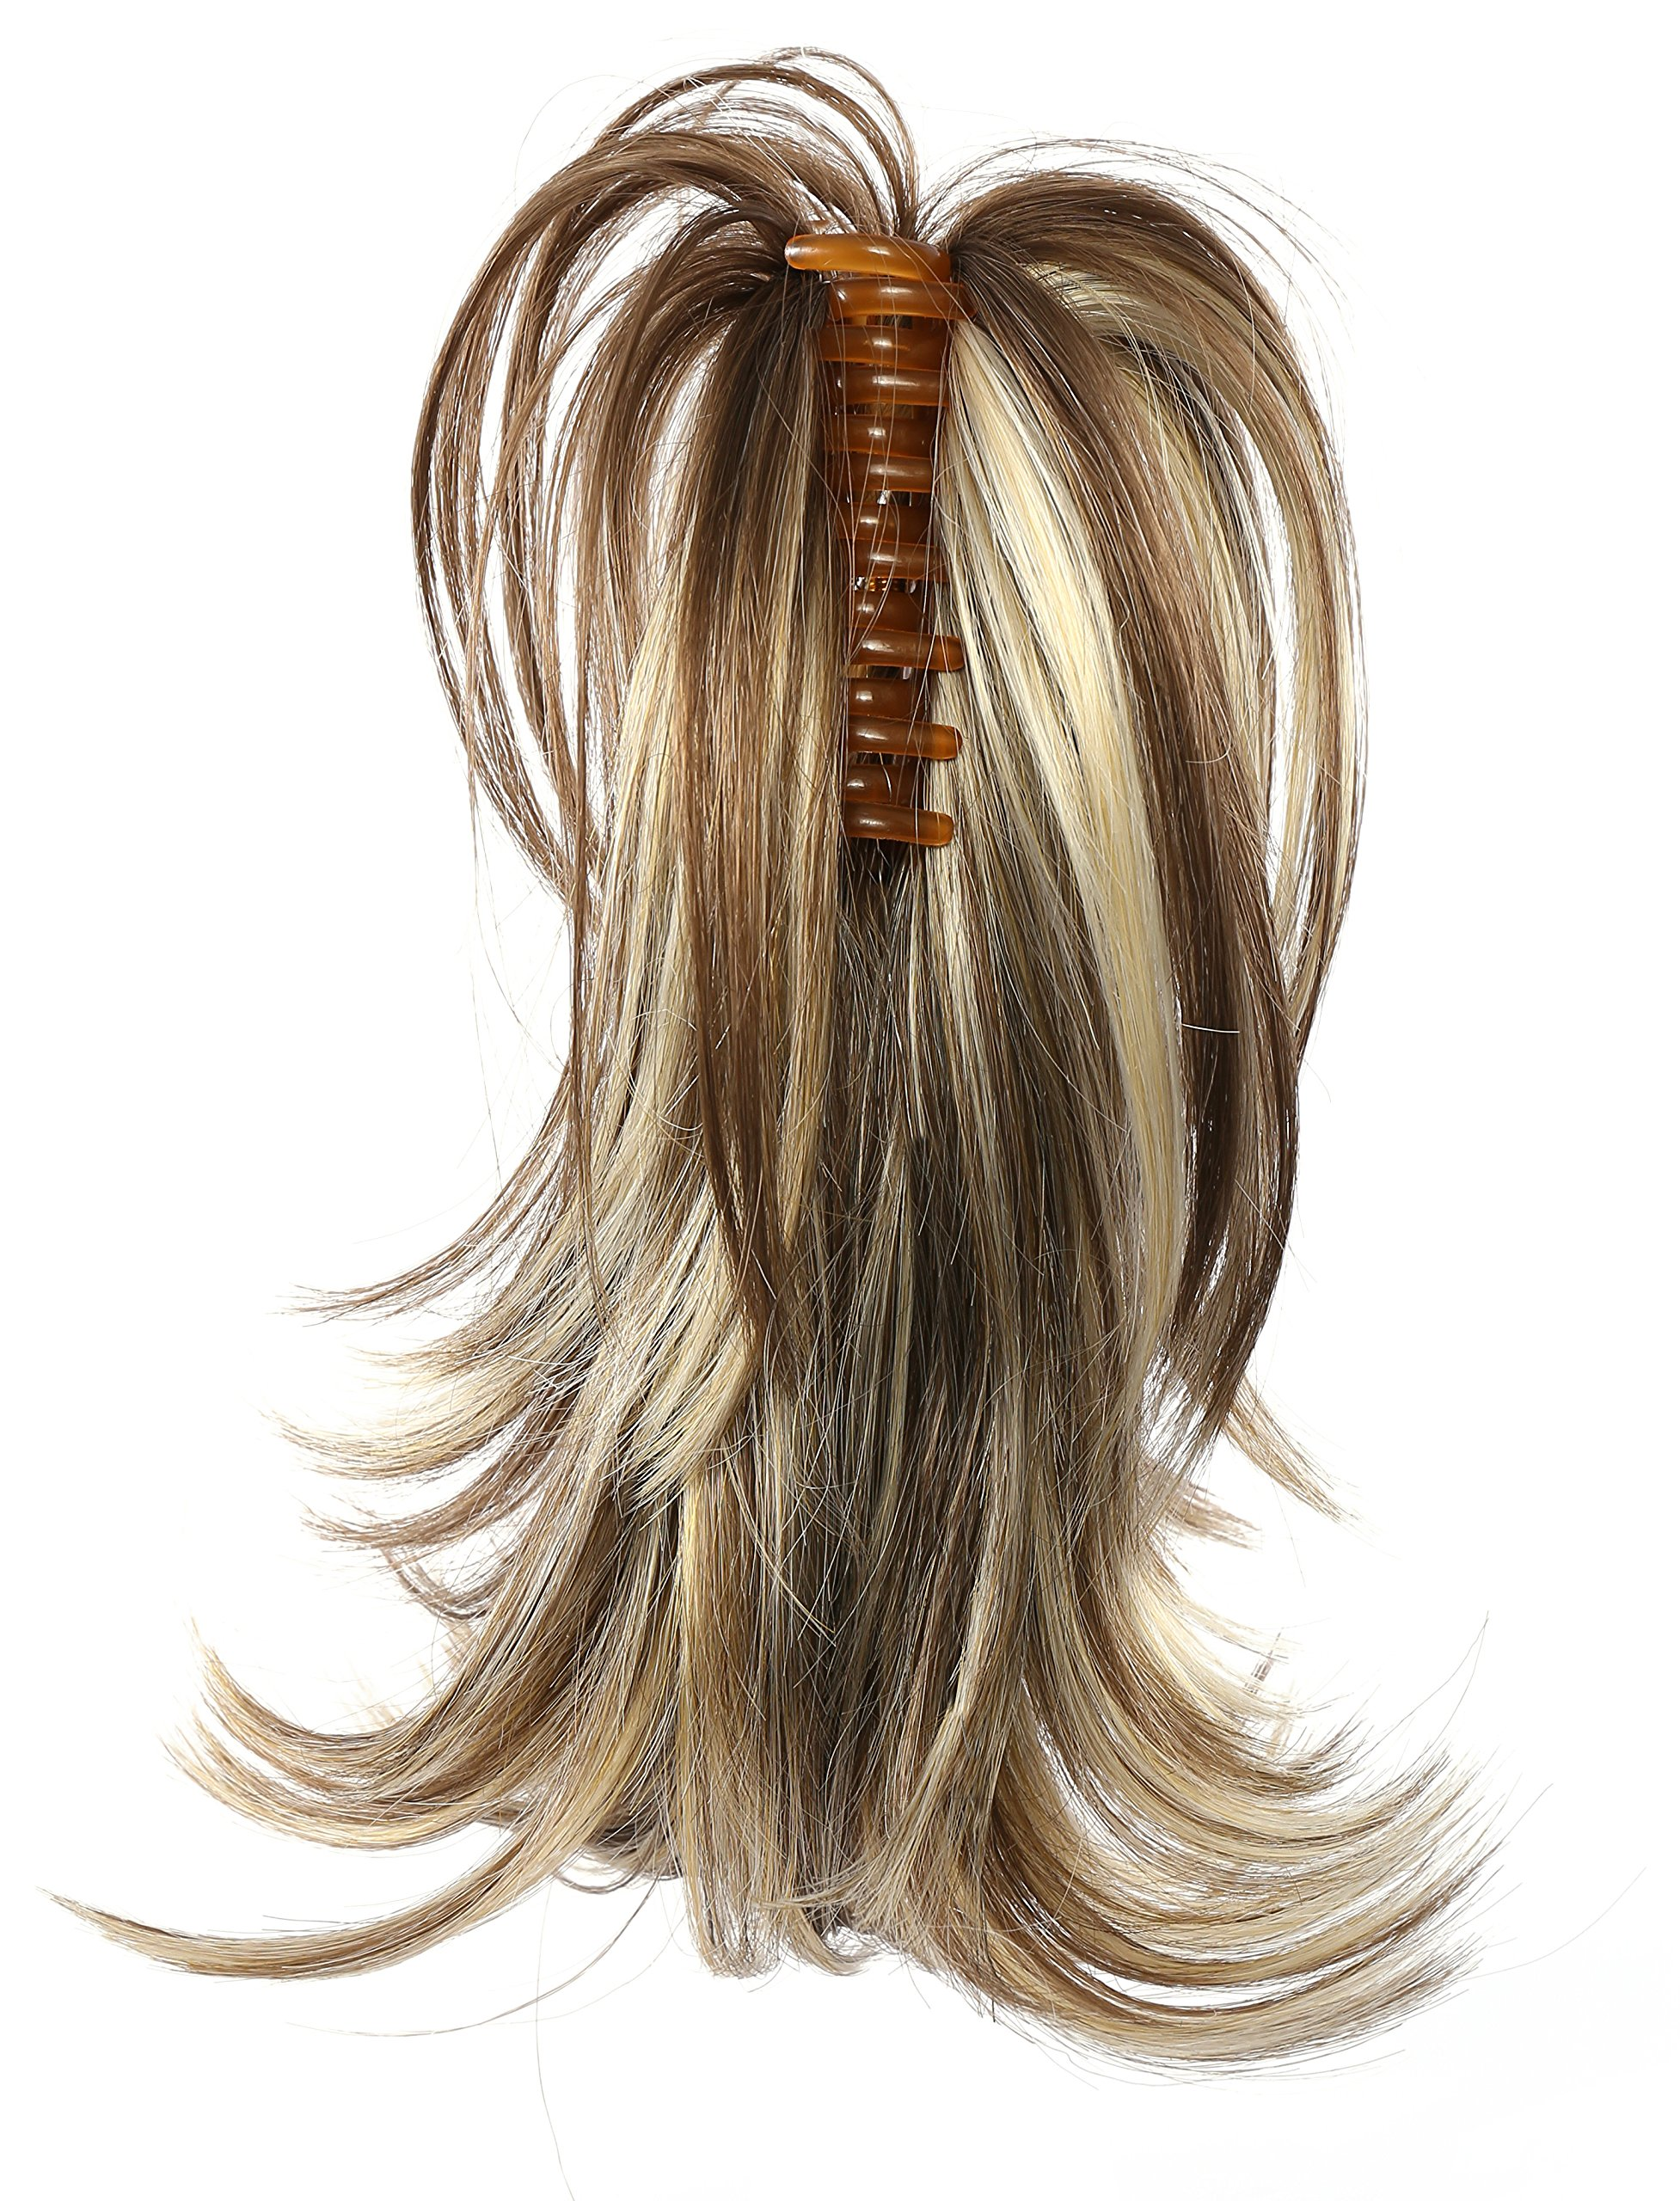 Onedor 12 inch Premium Synthetic Adjustable & Customizable Updo Style Ponytail Hair Extension with Clip on Claw Attachment (AB461)